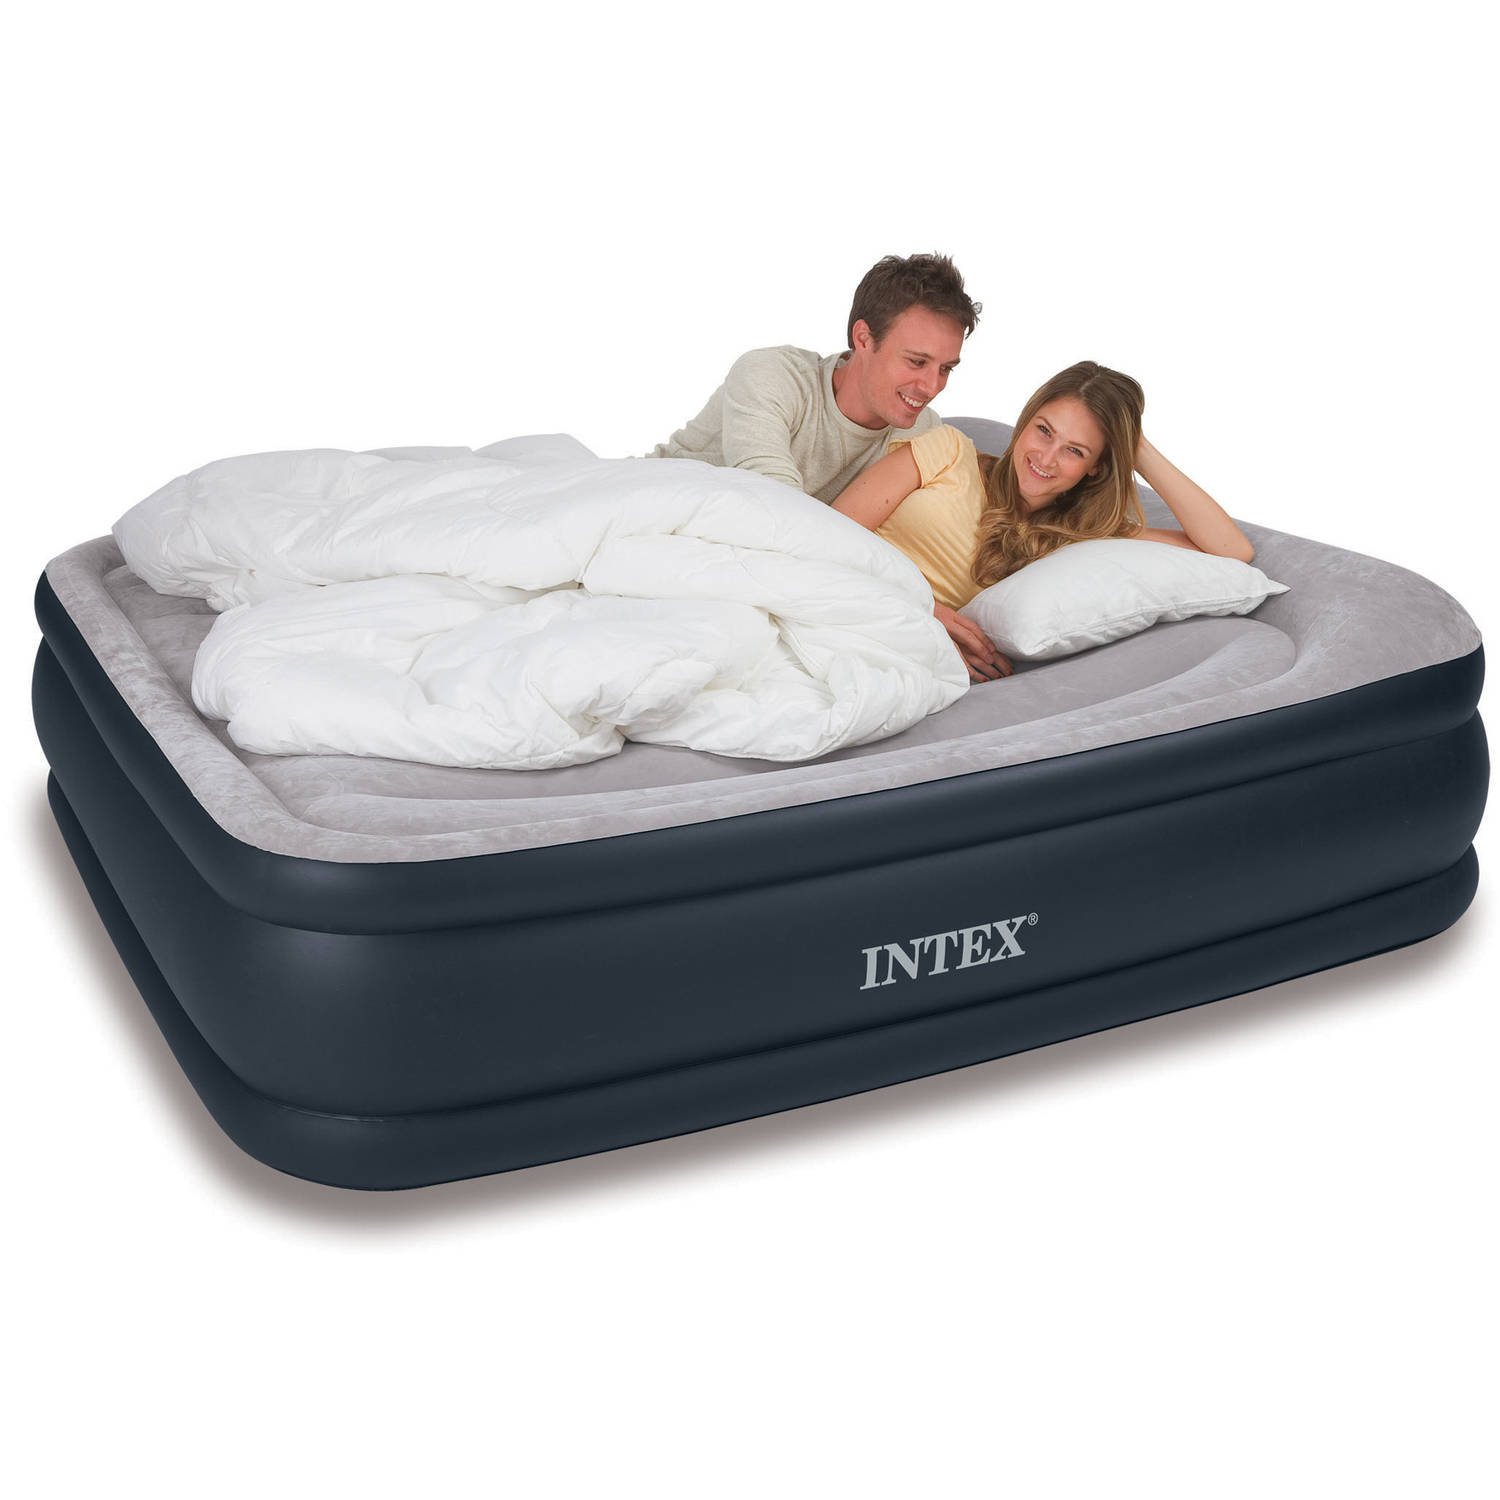 Intex Recreation Deluxe Raised Pillow Rest Airbed Mattres...